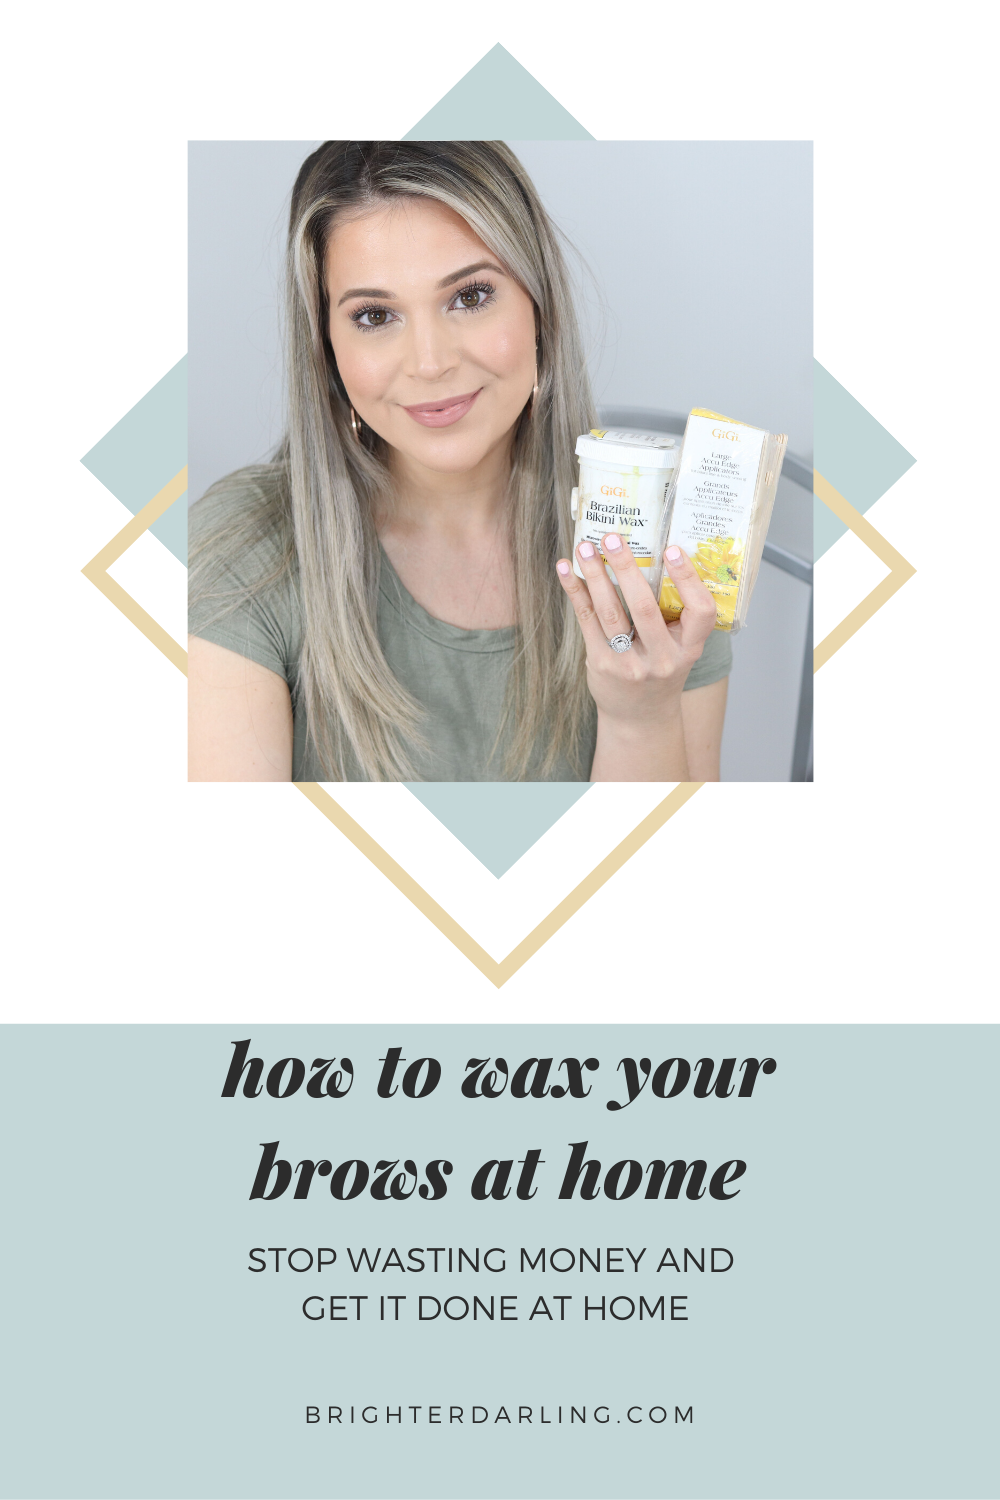 How To Wax Your Brows at Home Like a Pro | Save Money Wax Your Brows At Home | How To NOT Ruin Your Brows | How To Fix Your Brows